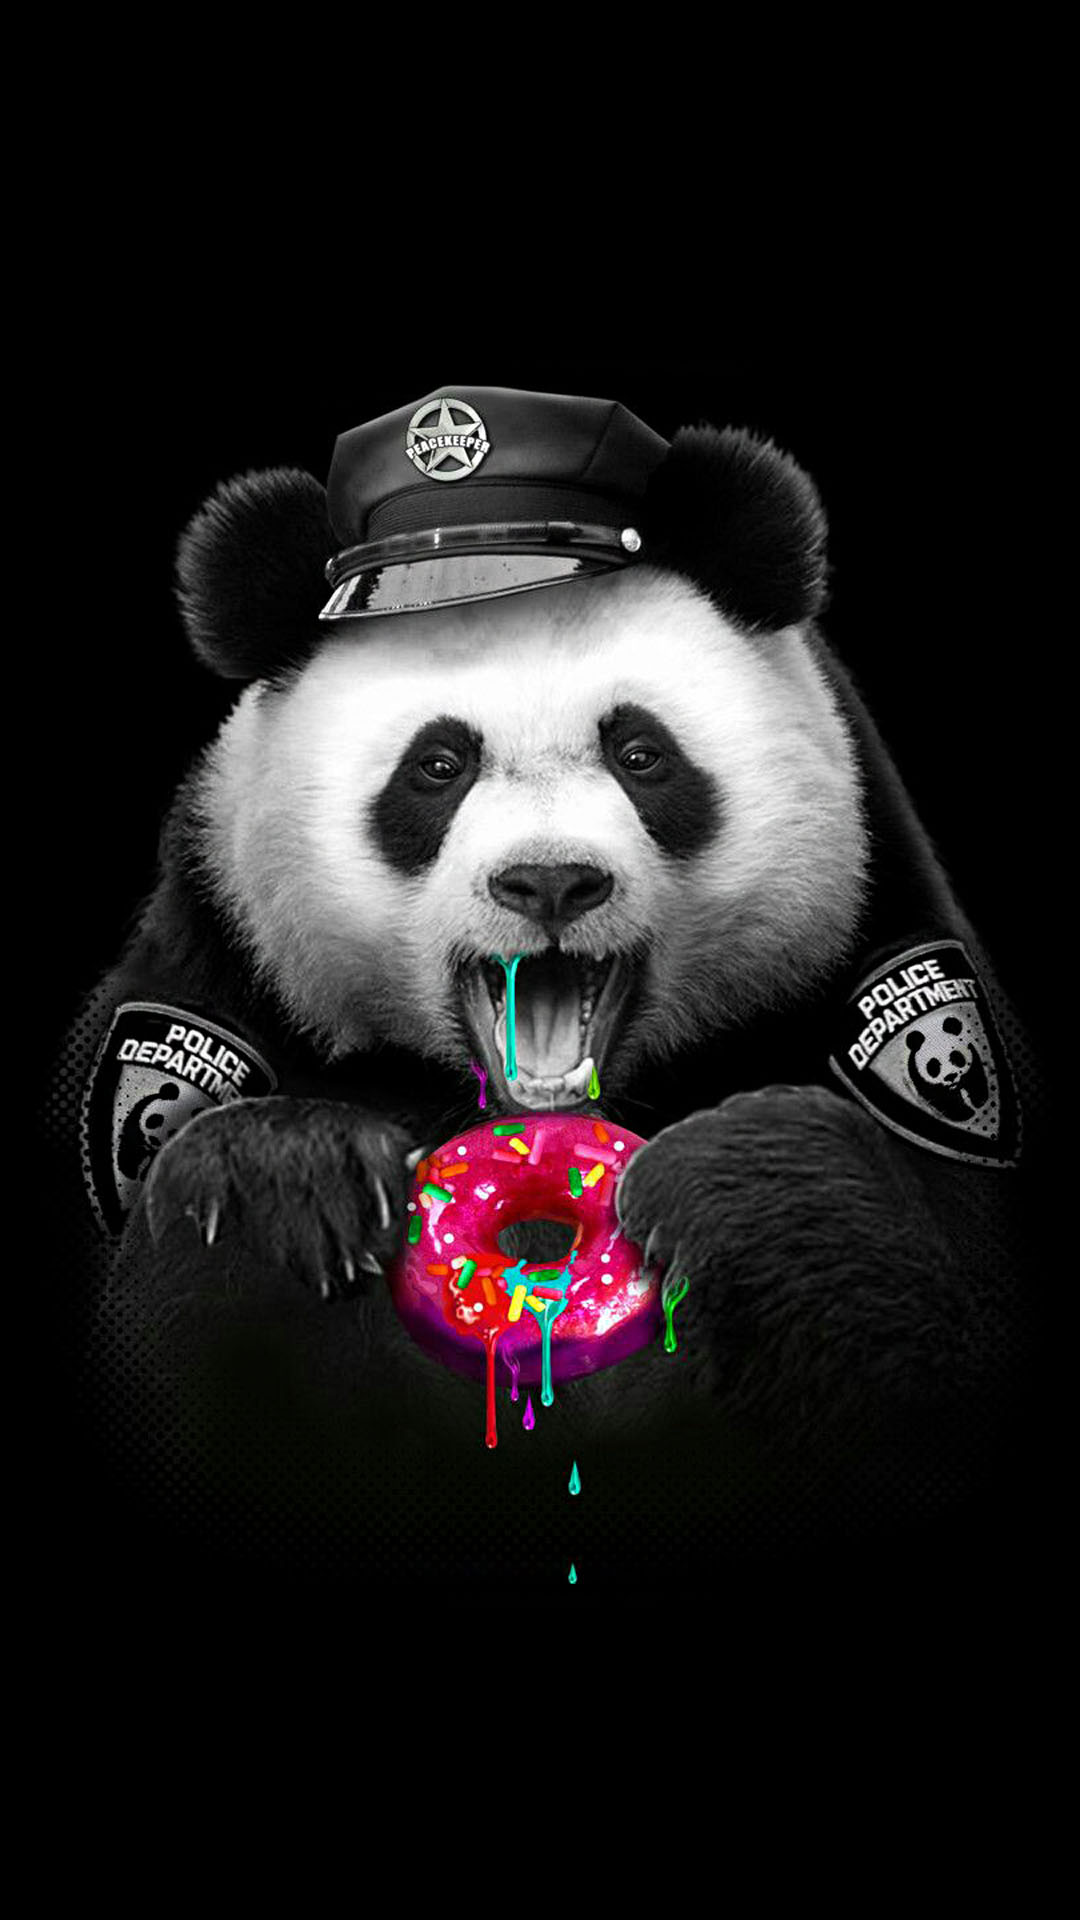 iPhone wallpaper panda police Panda